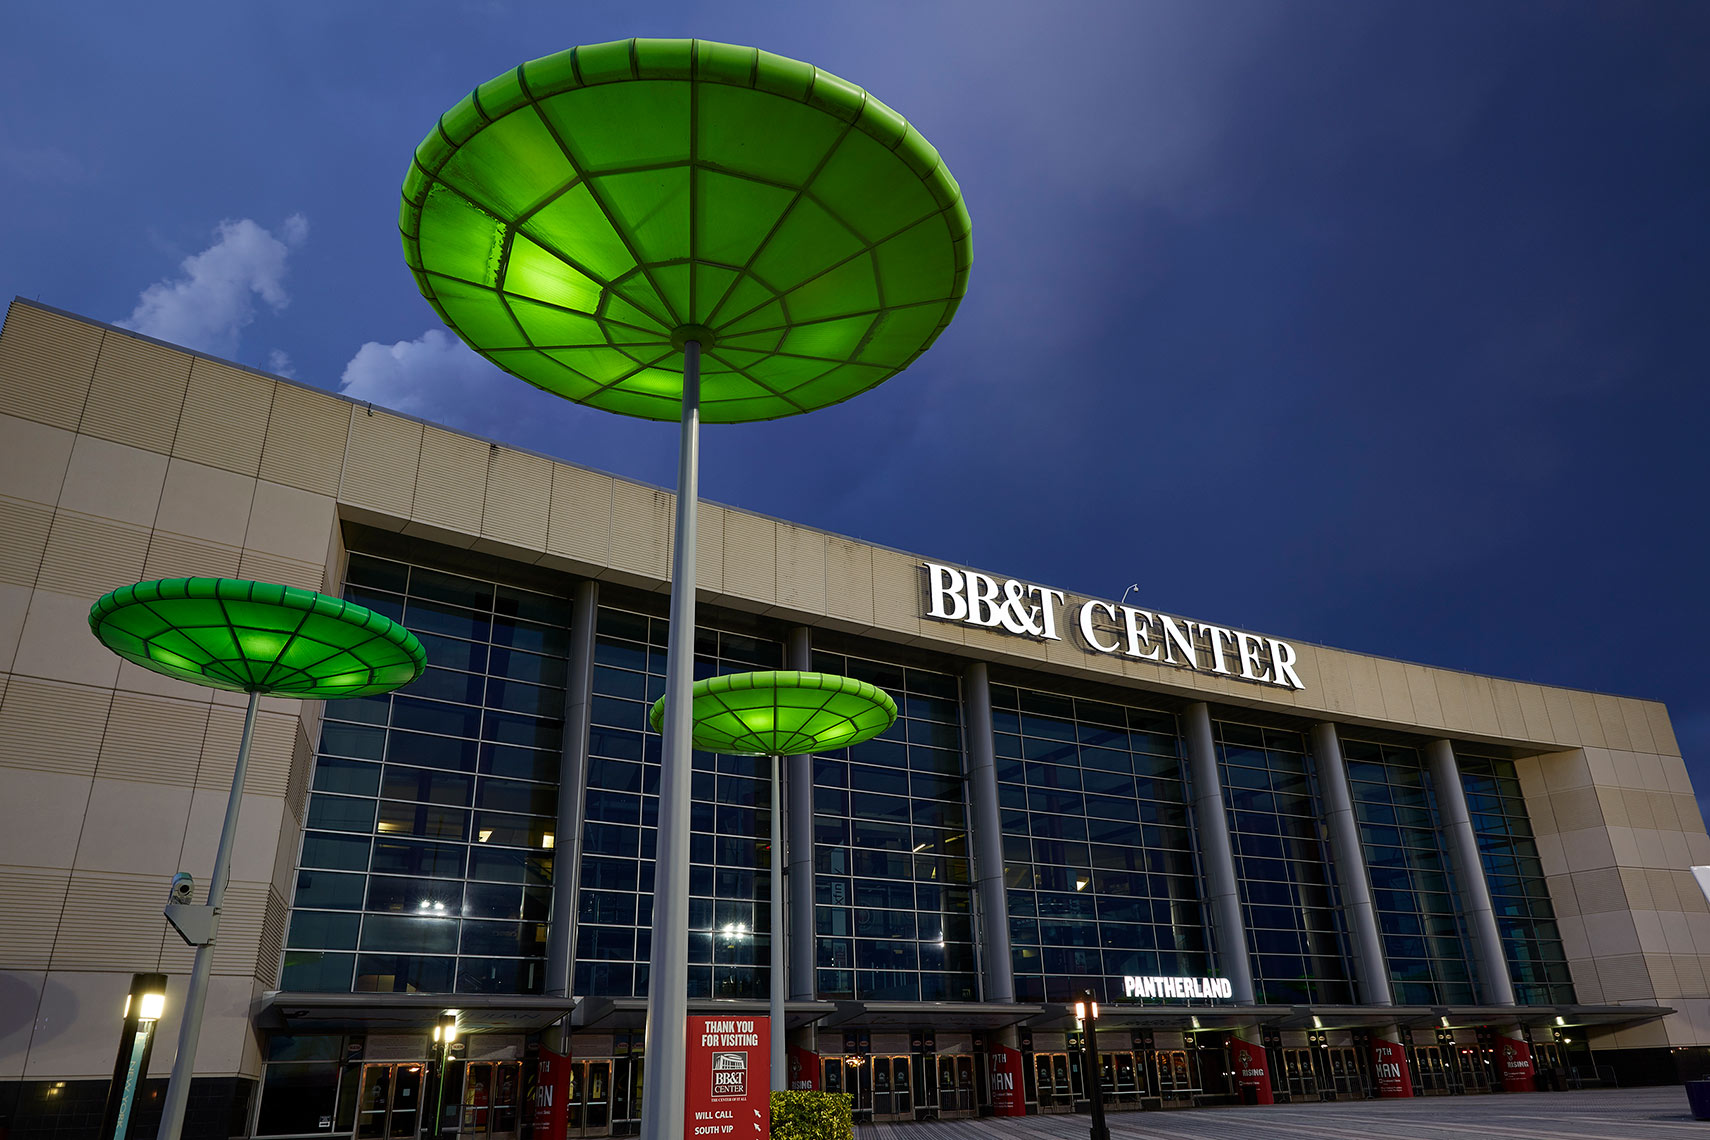 BB&T Center - Architecture Photographer - Steve Craft Photography - Phoenix, Arizona